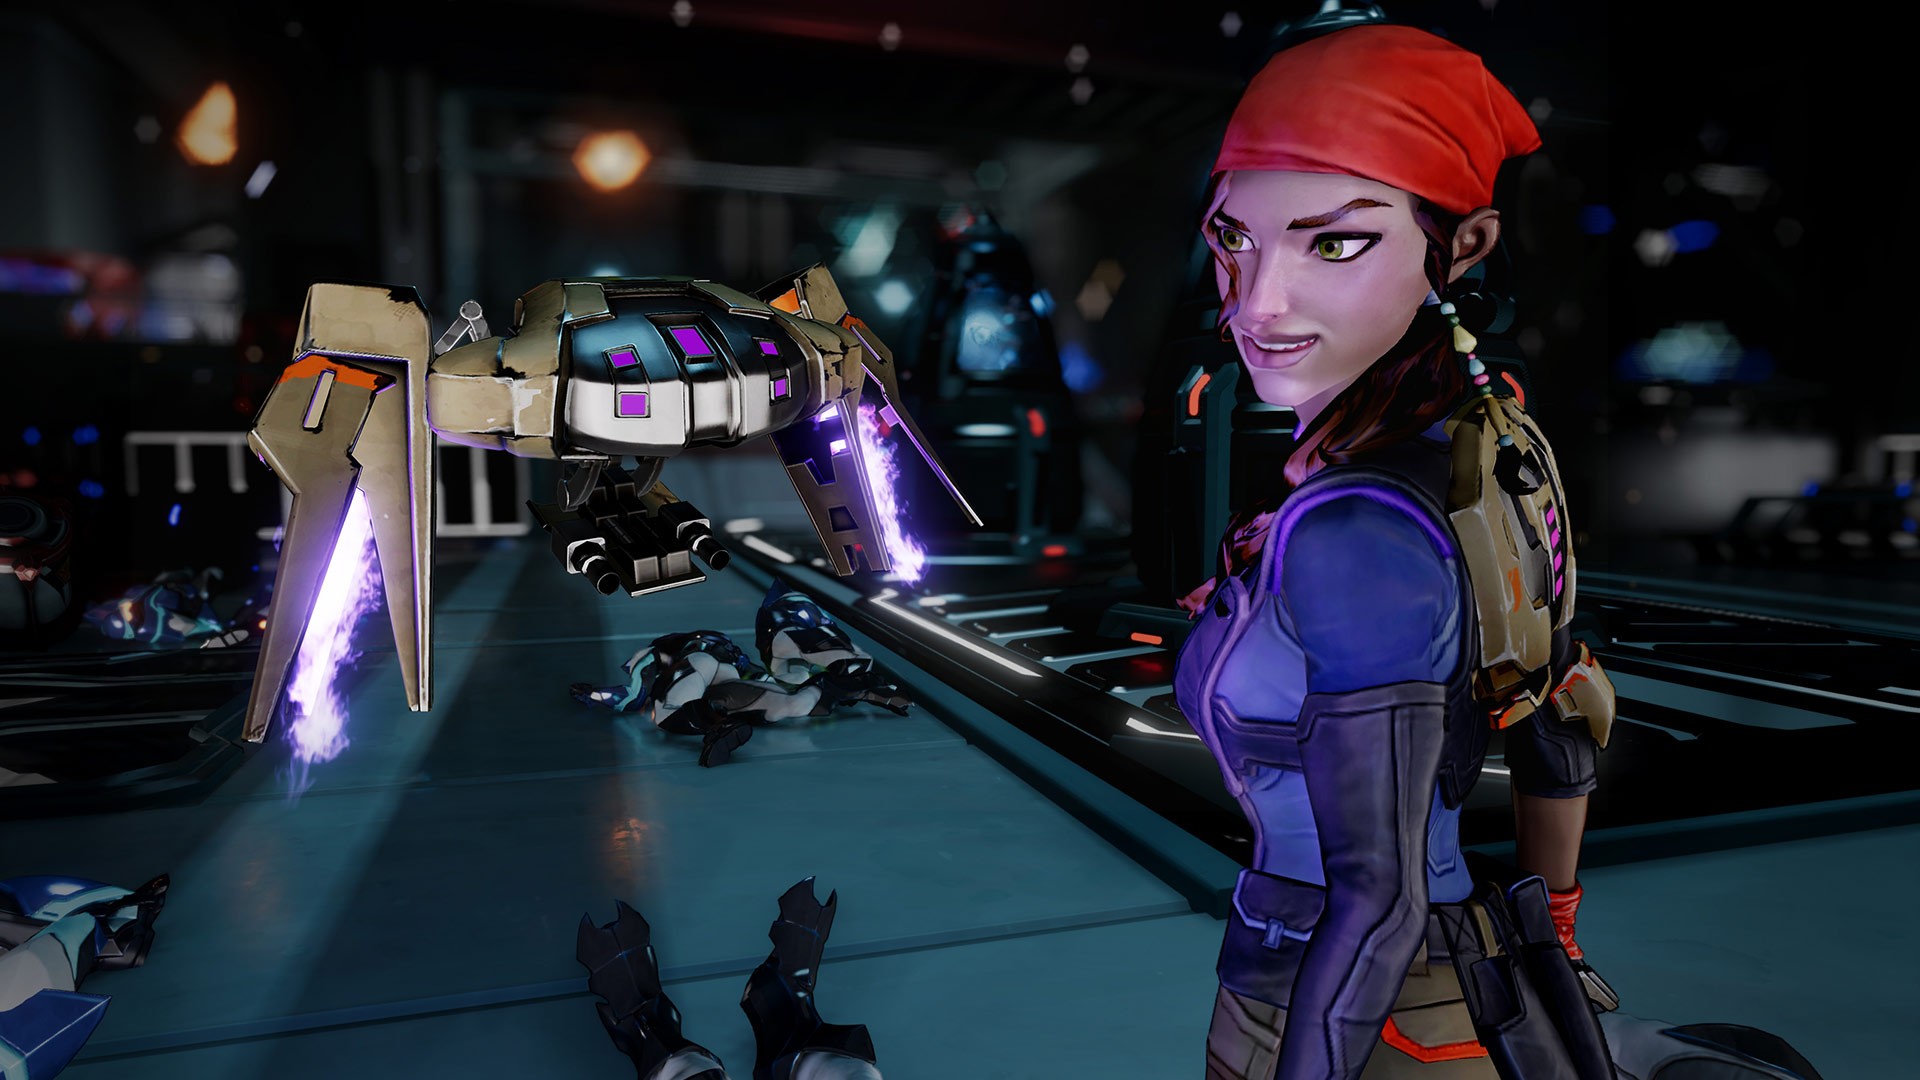 download agents of mayhem inc. all dlcs and updates repack by corepack singlelink iso rar part kumpulbagi diskokosmiko